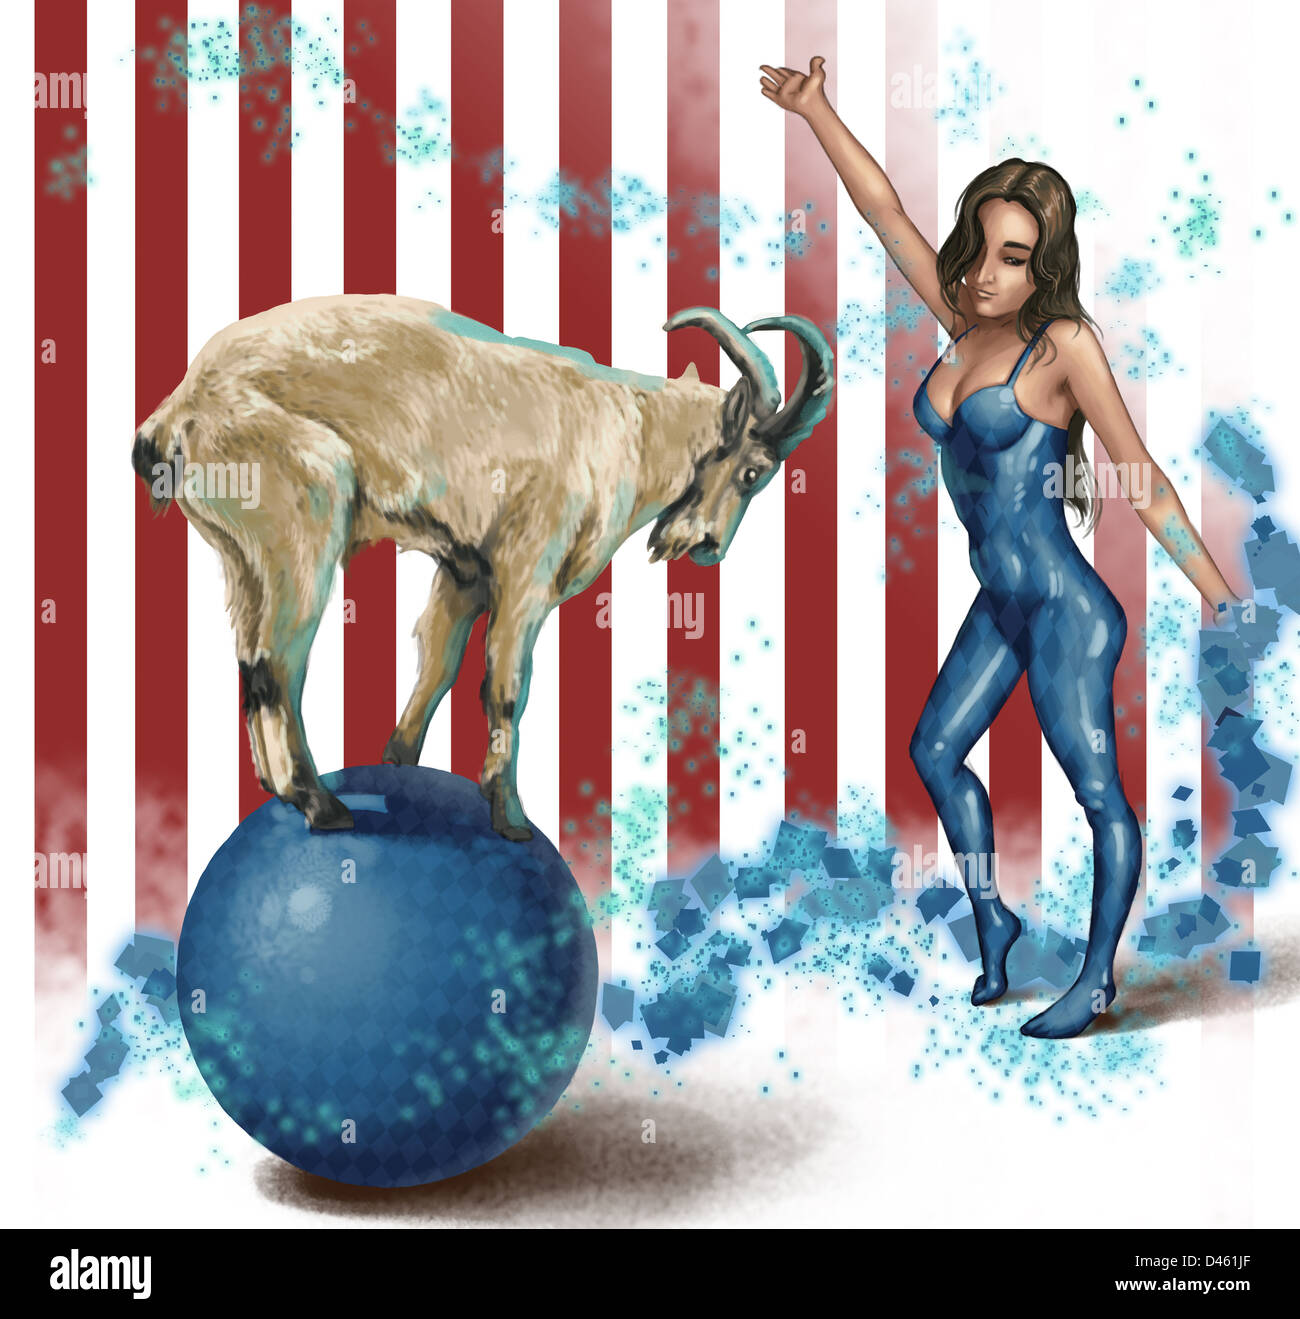 Illustrative image of female performer looking at goat balancing on sphere - Stock Image